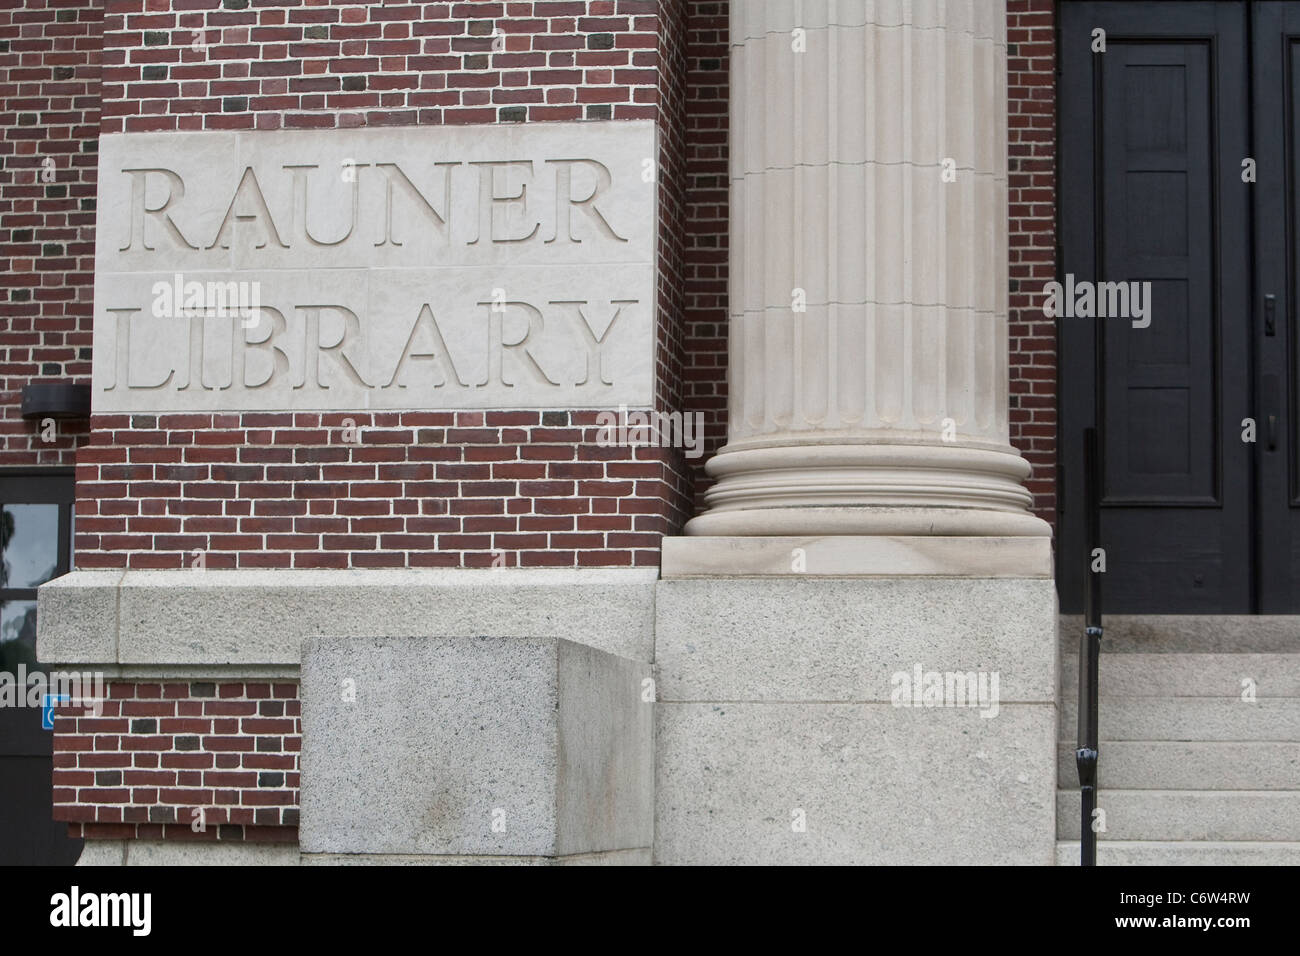 Dartmouth College's Rauner Library is pictured in Hanover, New Hampshire, Sunday August 7, 2011. Stock Photo